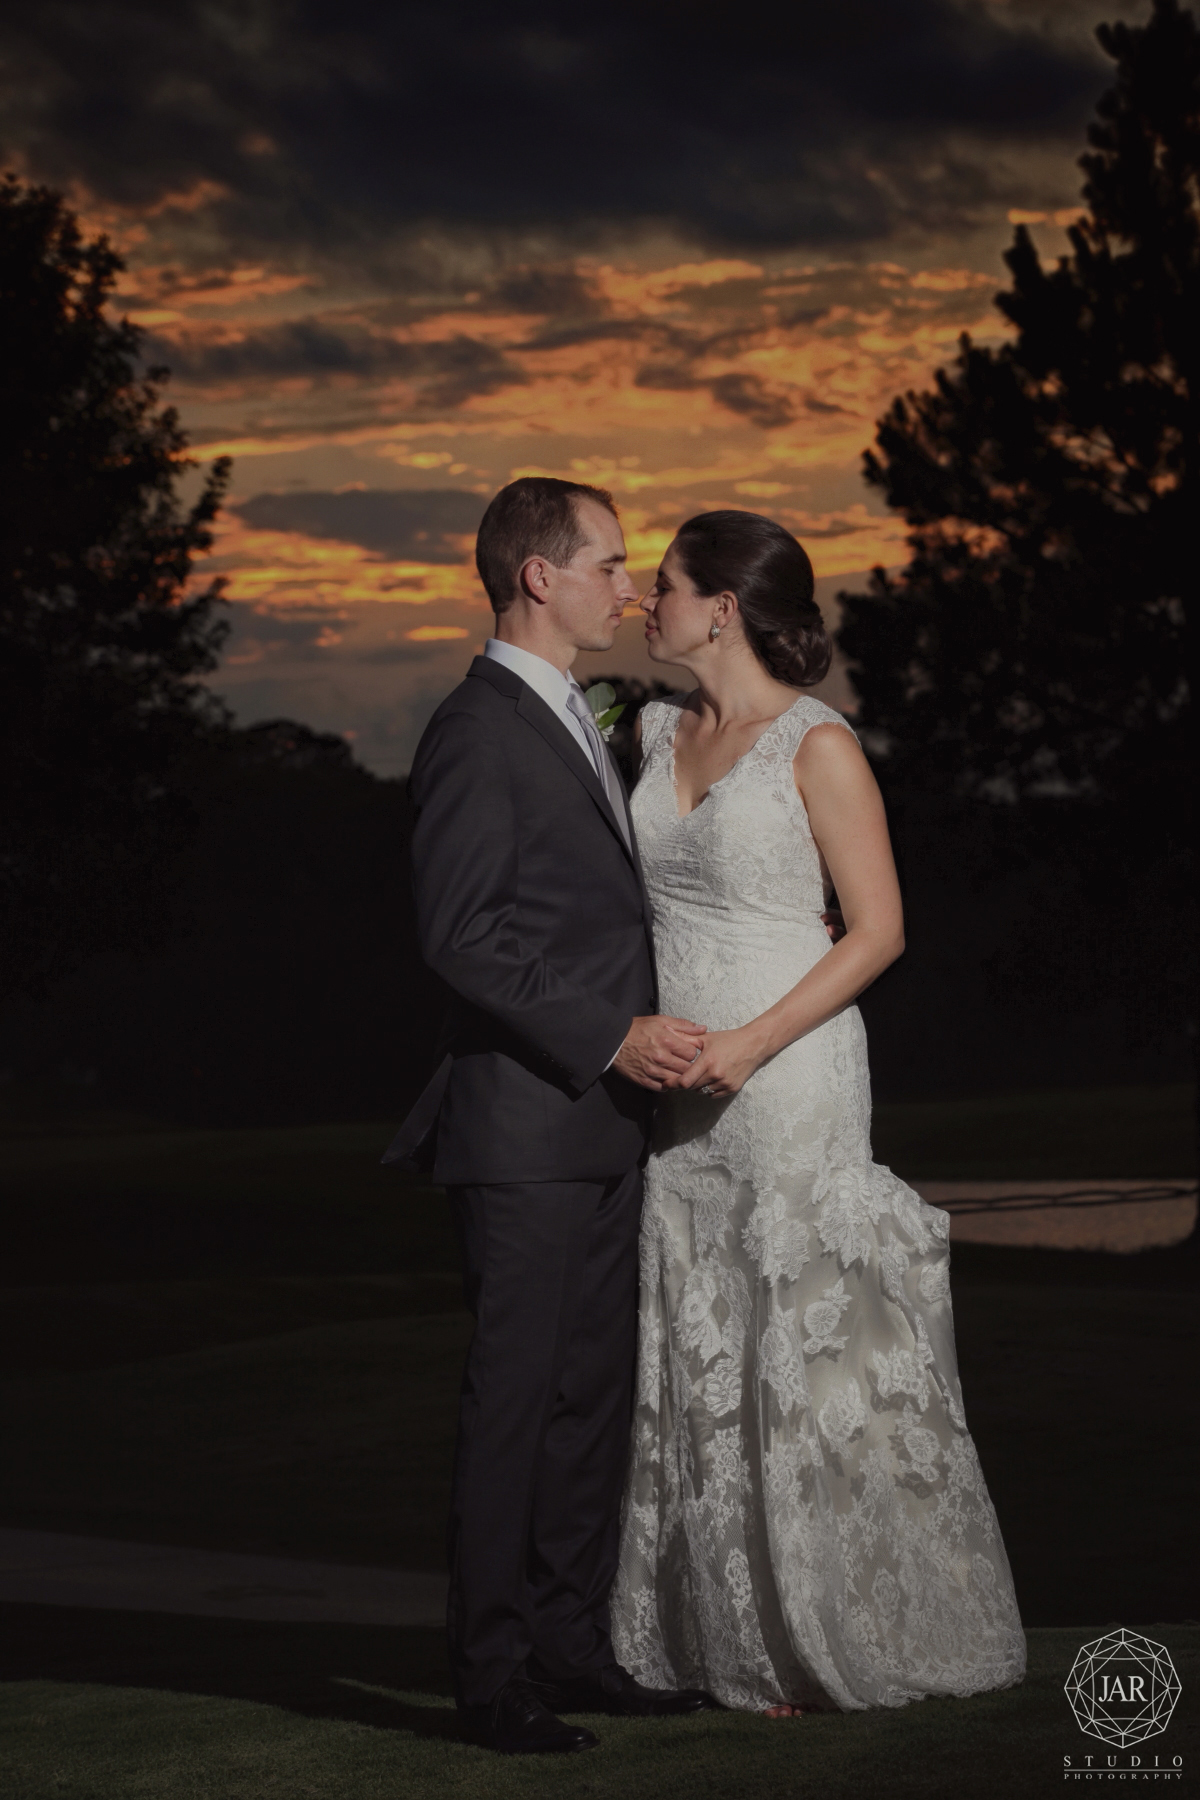 46-beautiful-bride-and-groom-portrait-gorgeous-sunset-colors-orlando-sky-jarstudio-photography.JPG